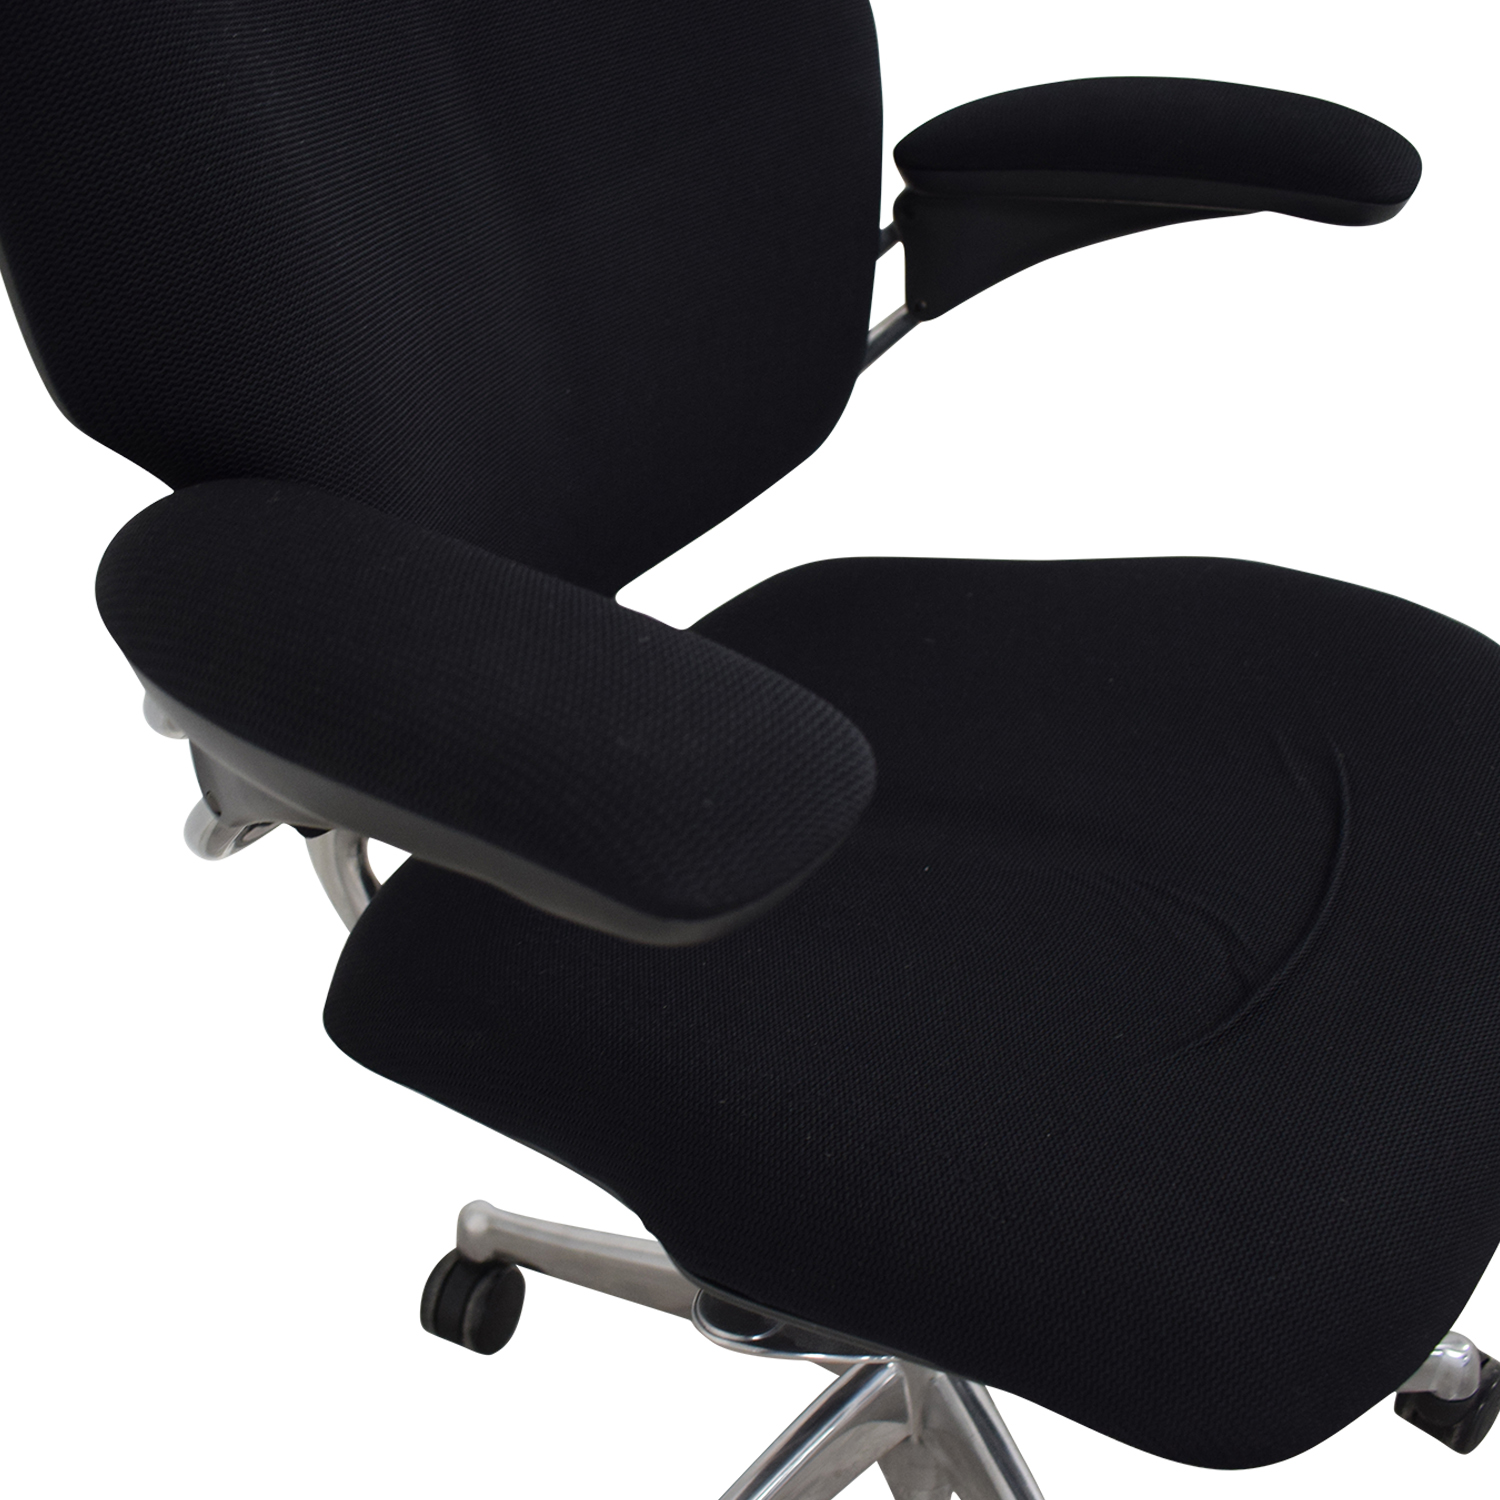 Humanscale Humanscale Desk Chair second hand